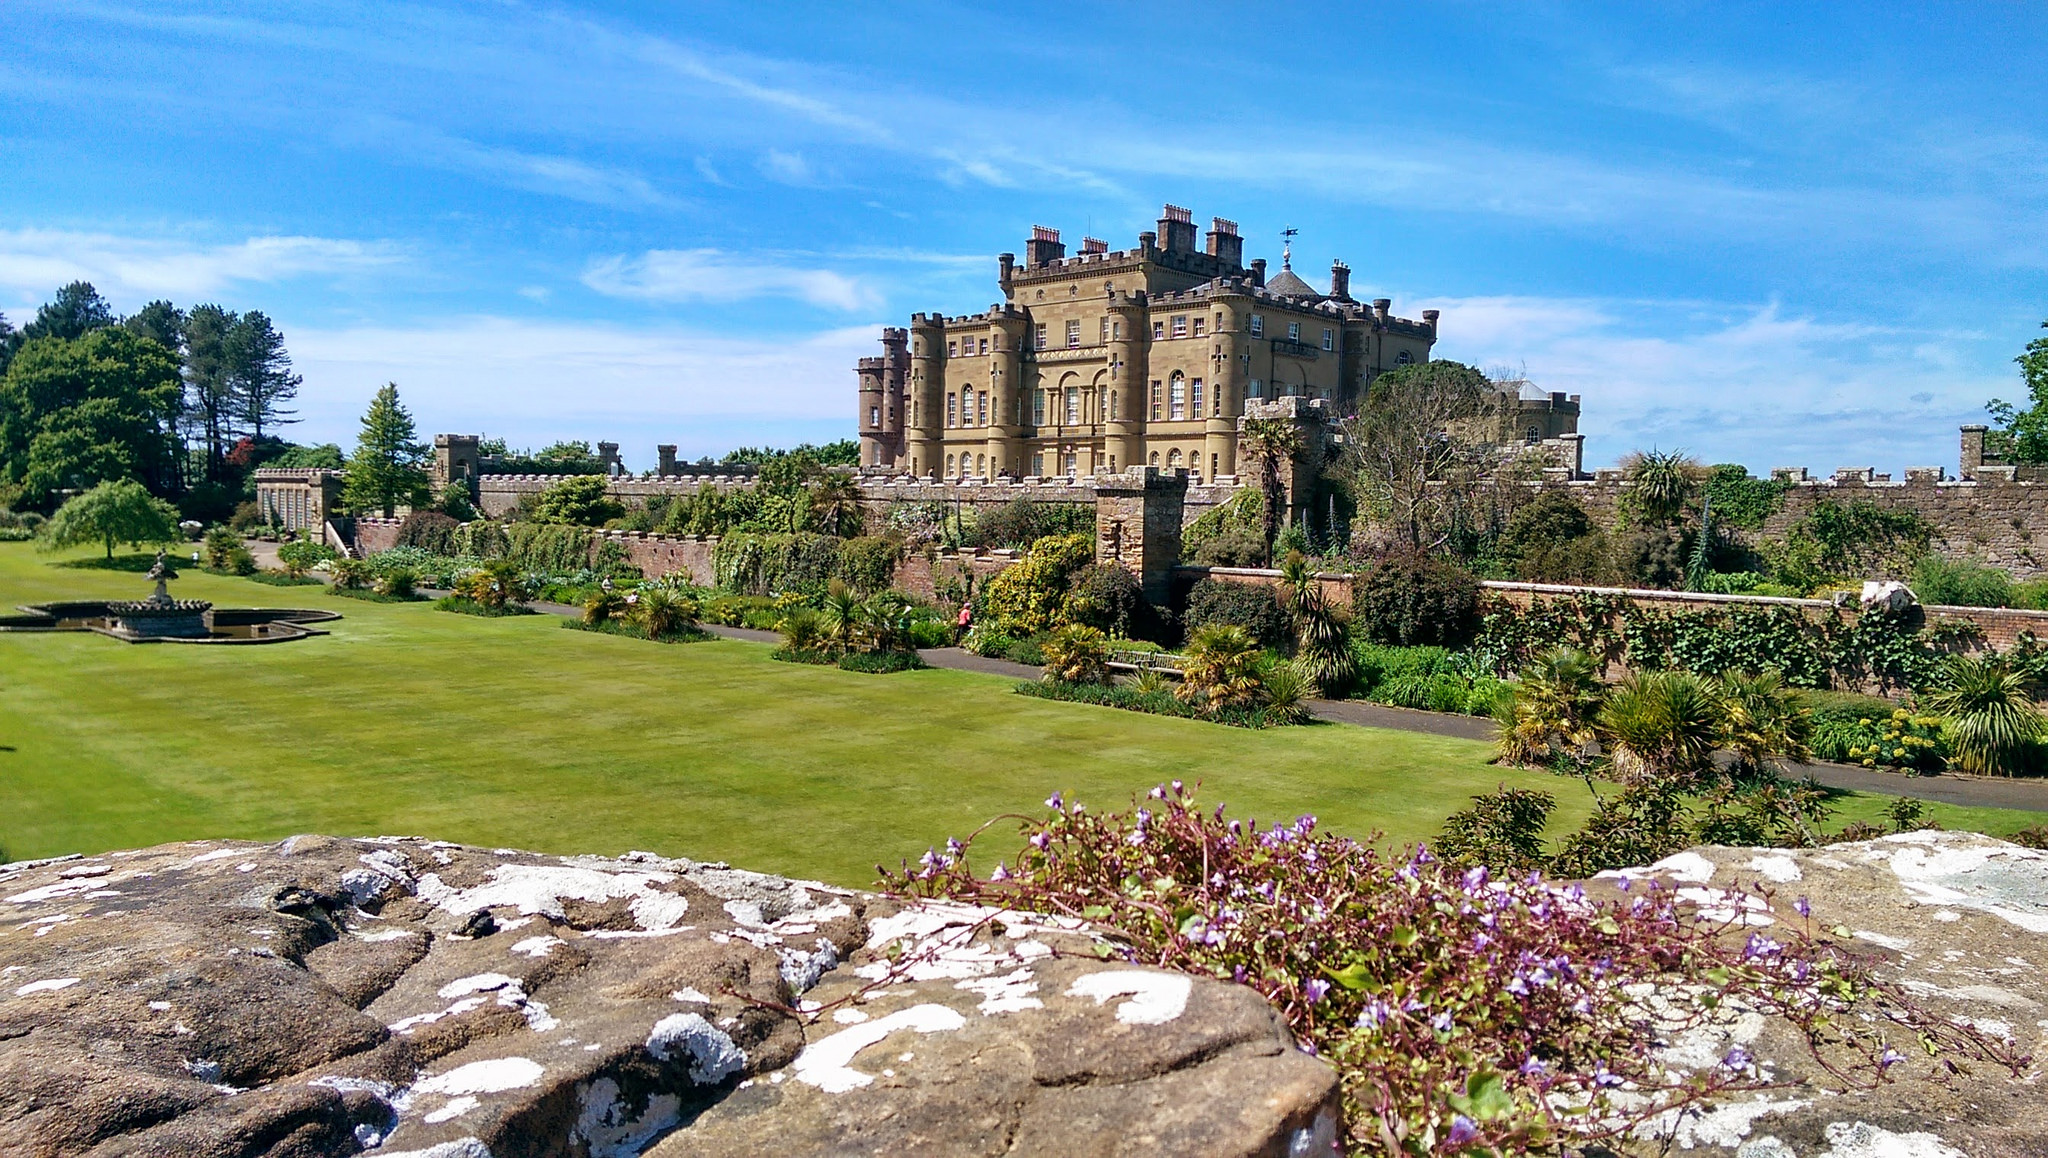 Culzean Castle | © Muhammad Younas/ Flickr